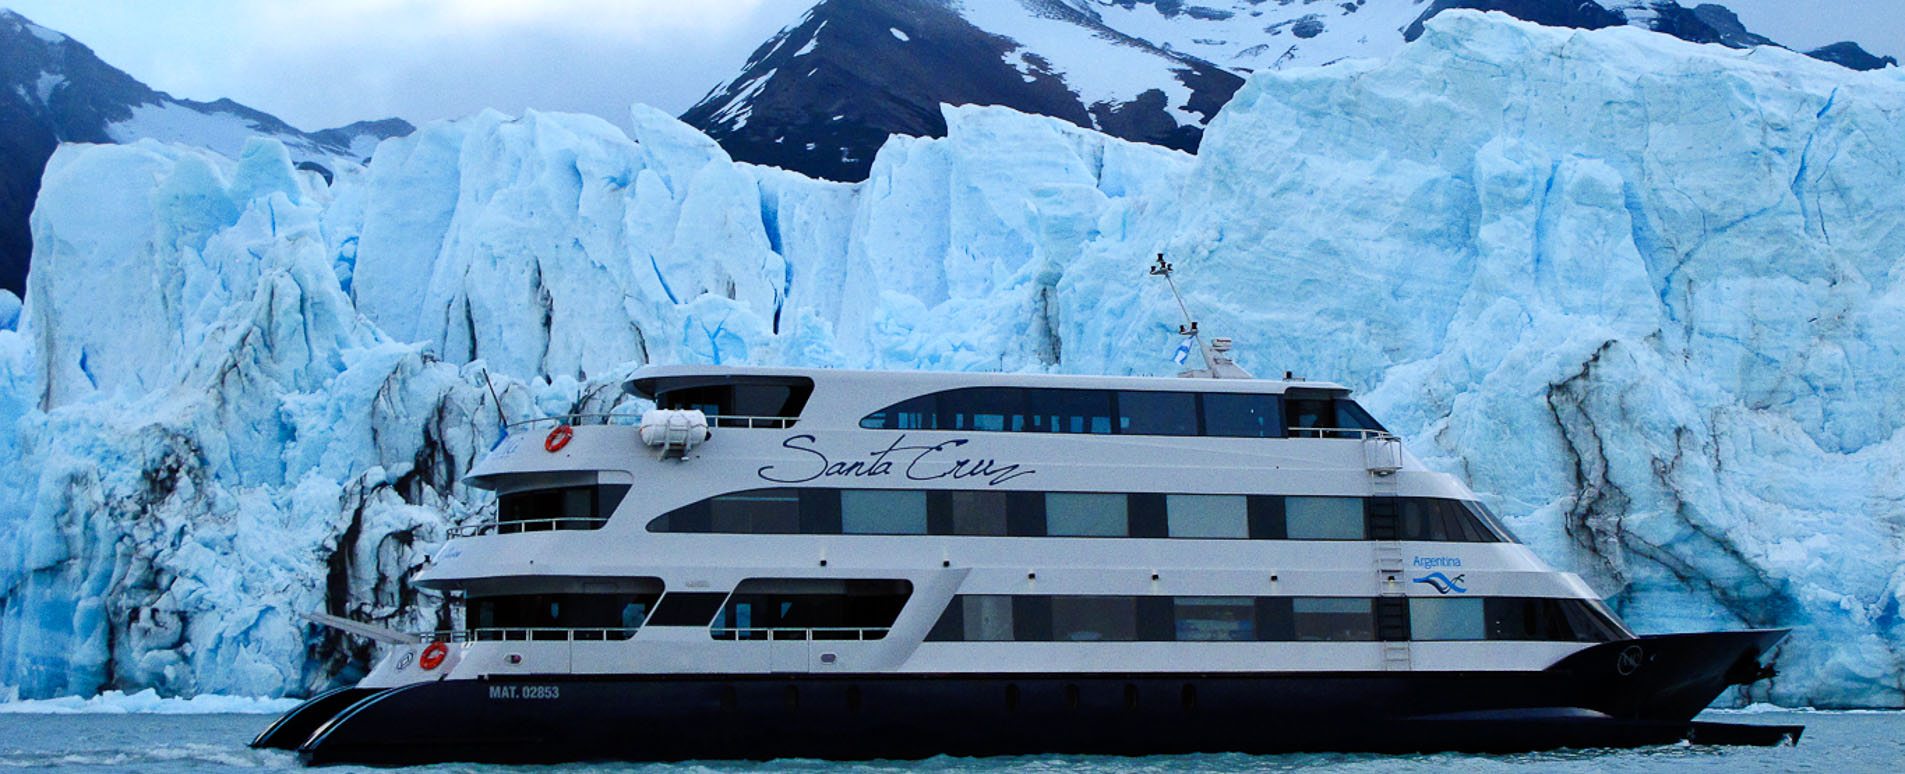 argentina expedition cruises